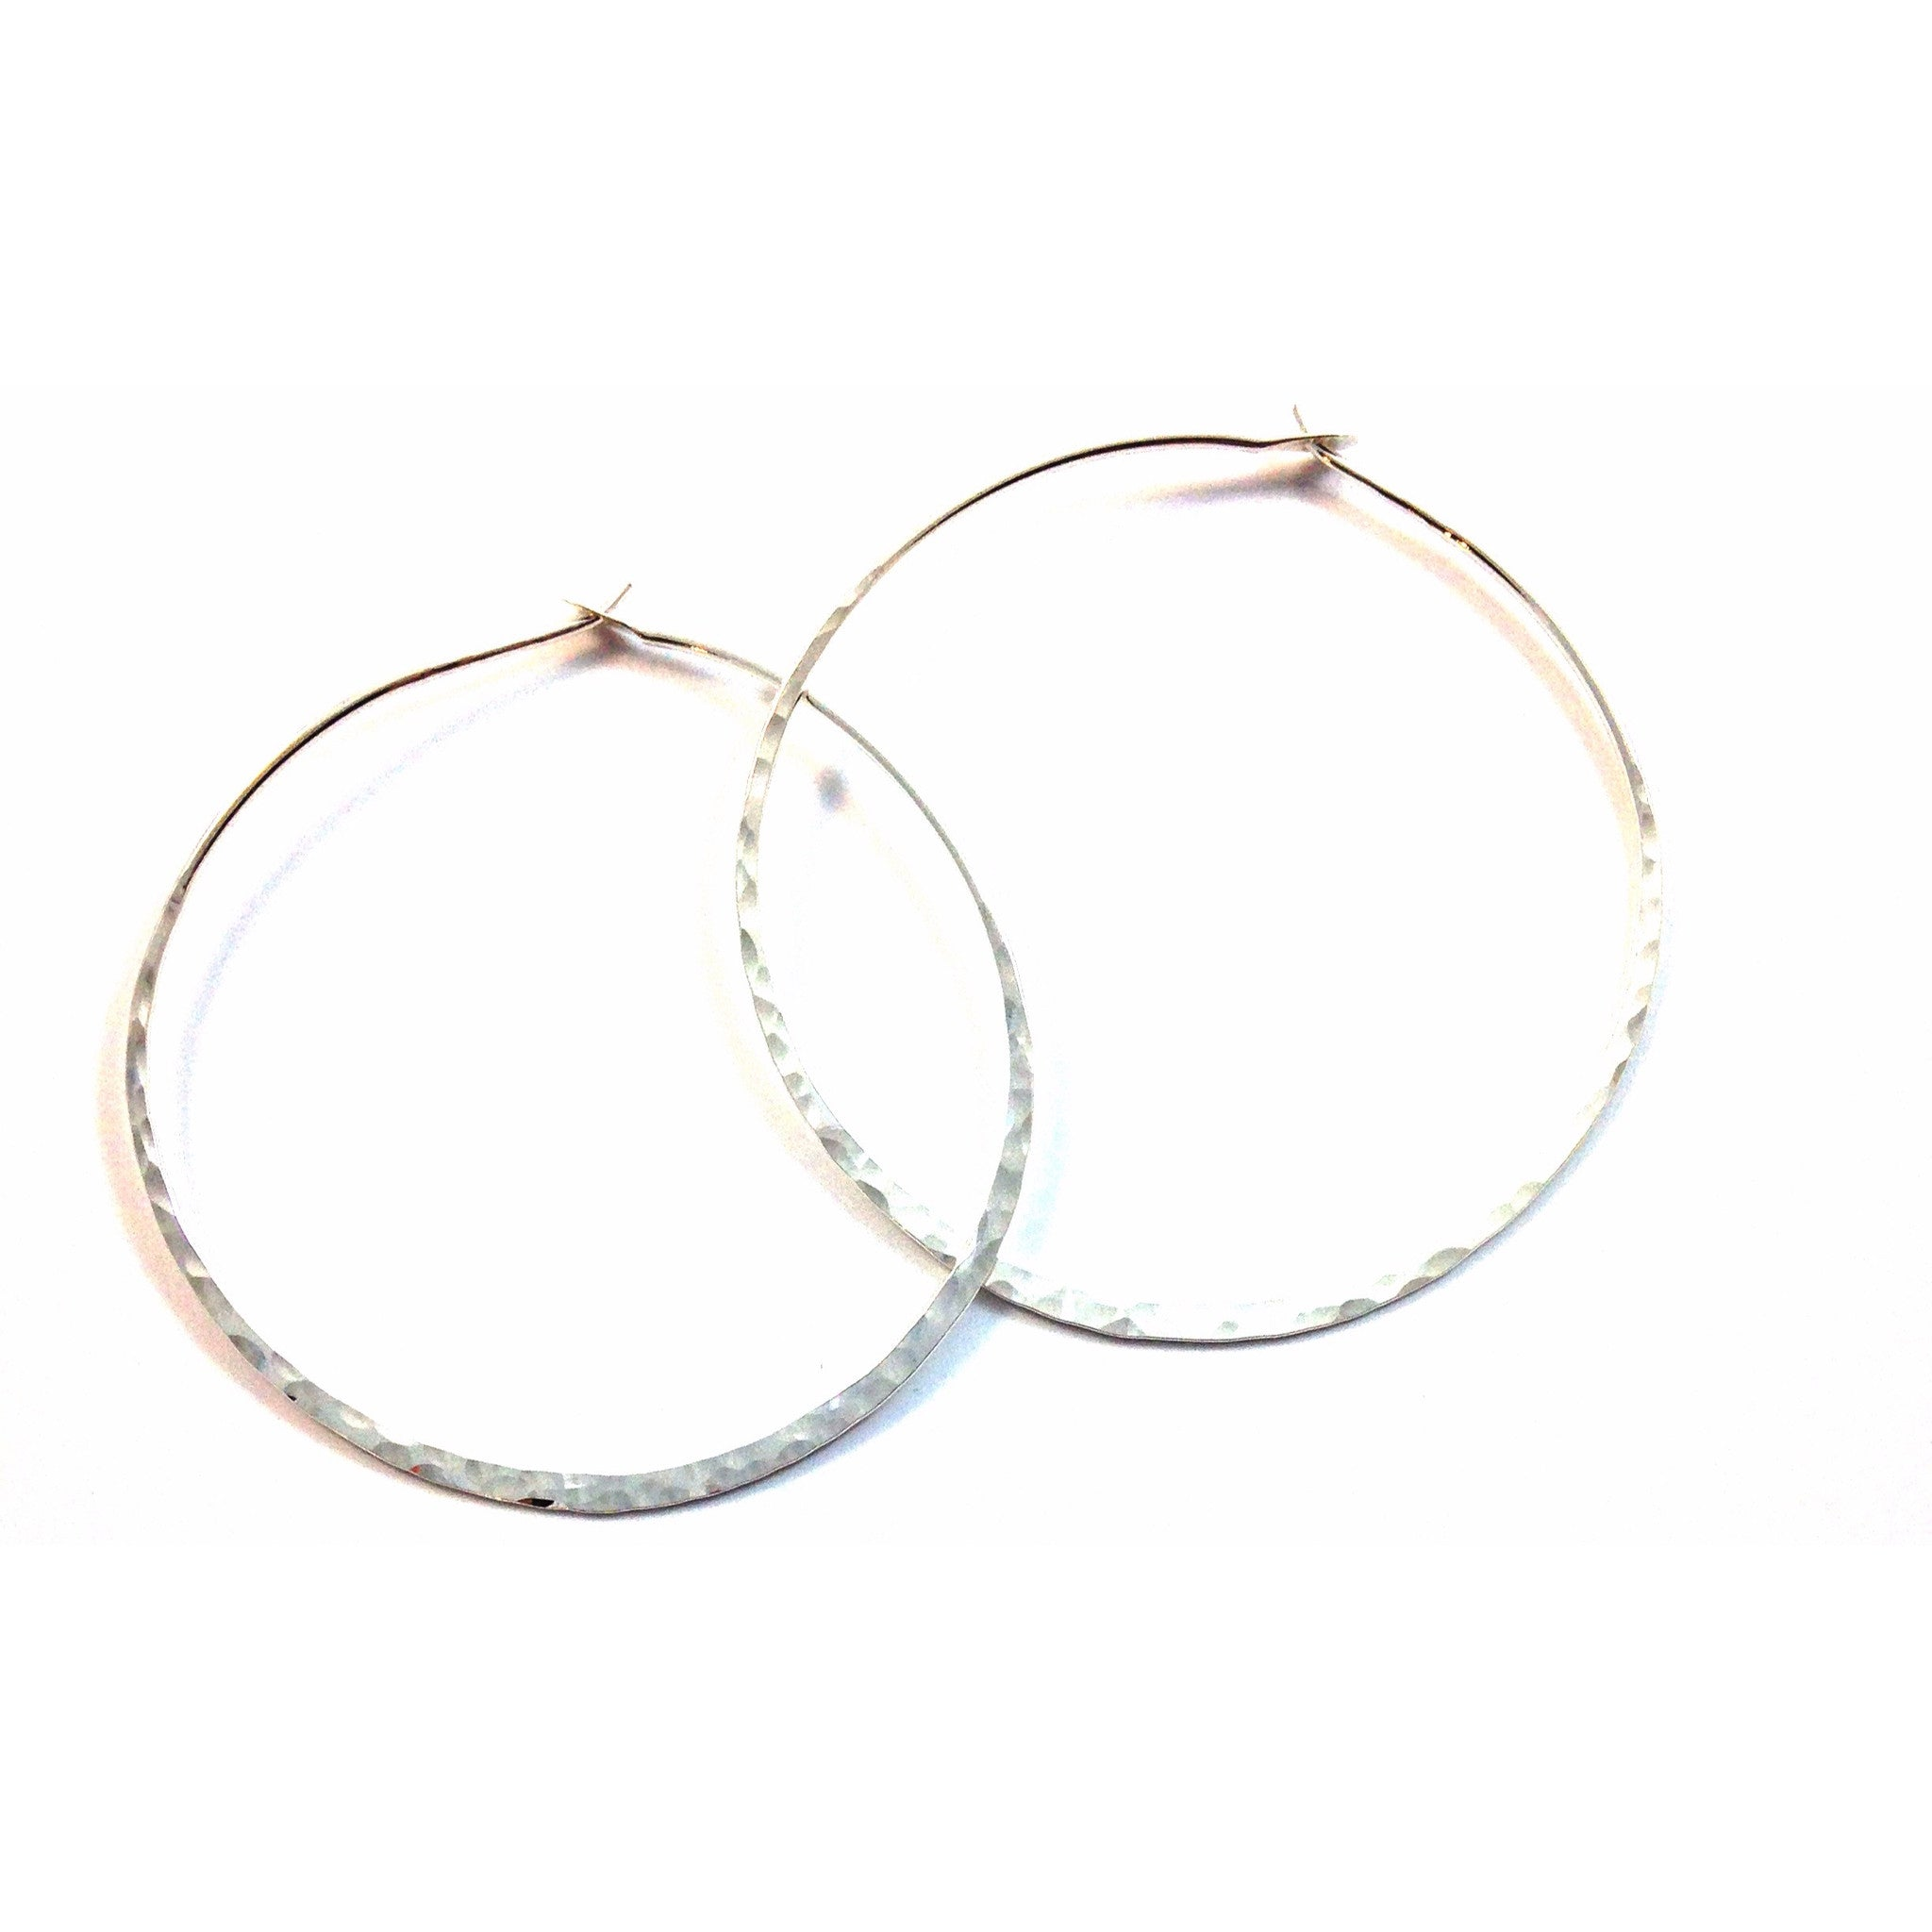 Silver Hammered Hoops, $10-$32 | Sterling Silver Earrings | Light Years Jewelry